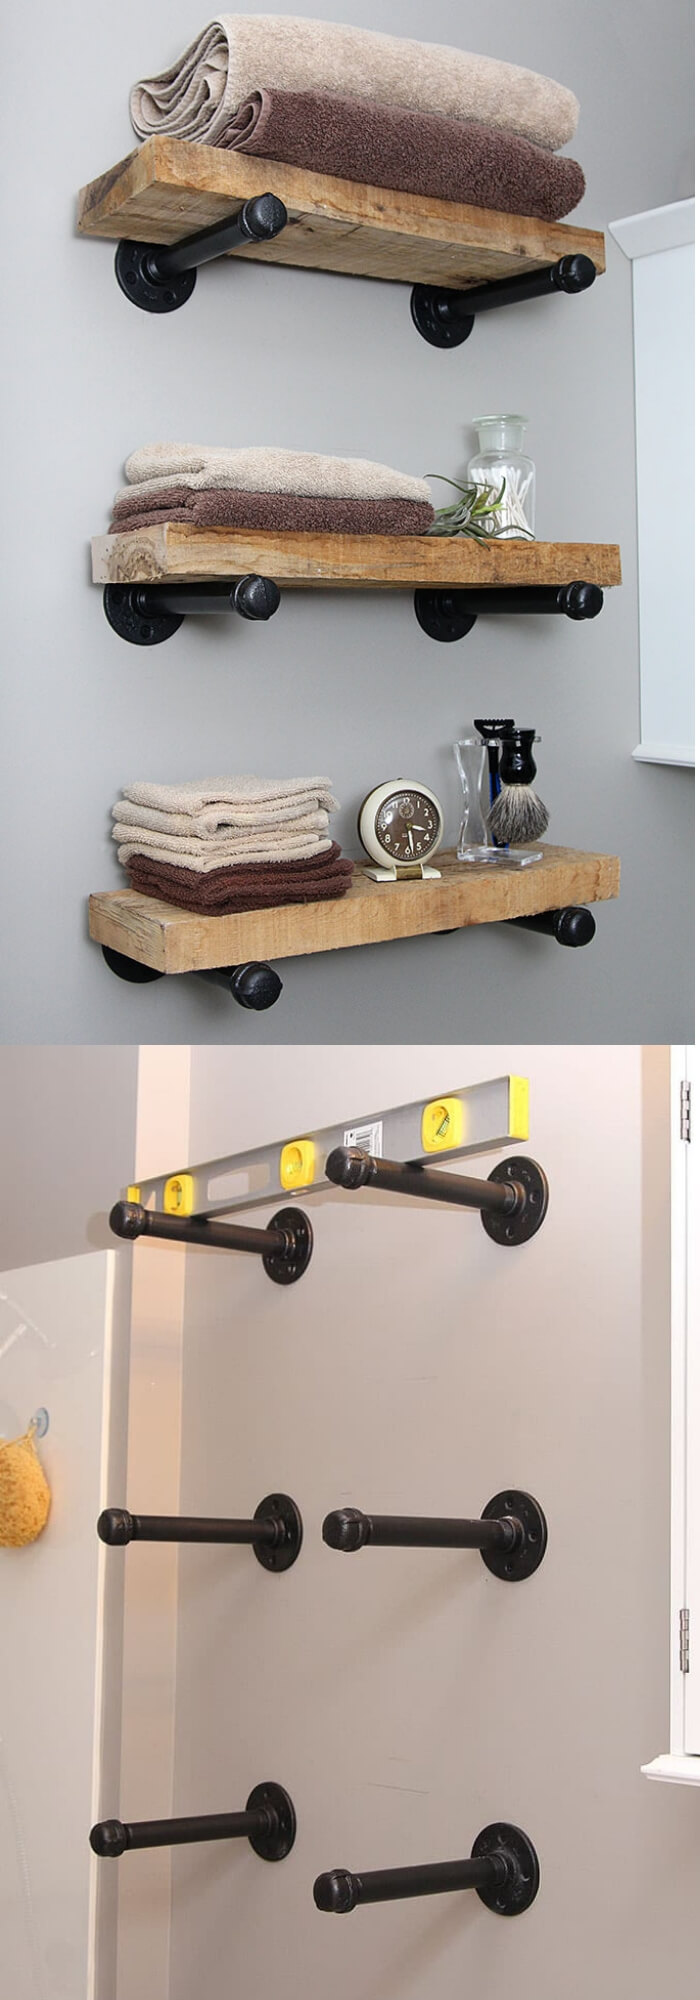 Pipe and wood shelves | Best Over the Toilet Storage Ideas for Bathroom